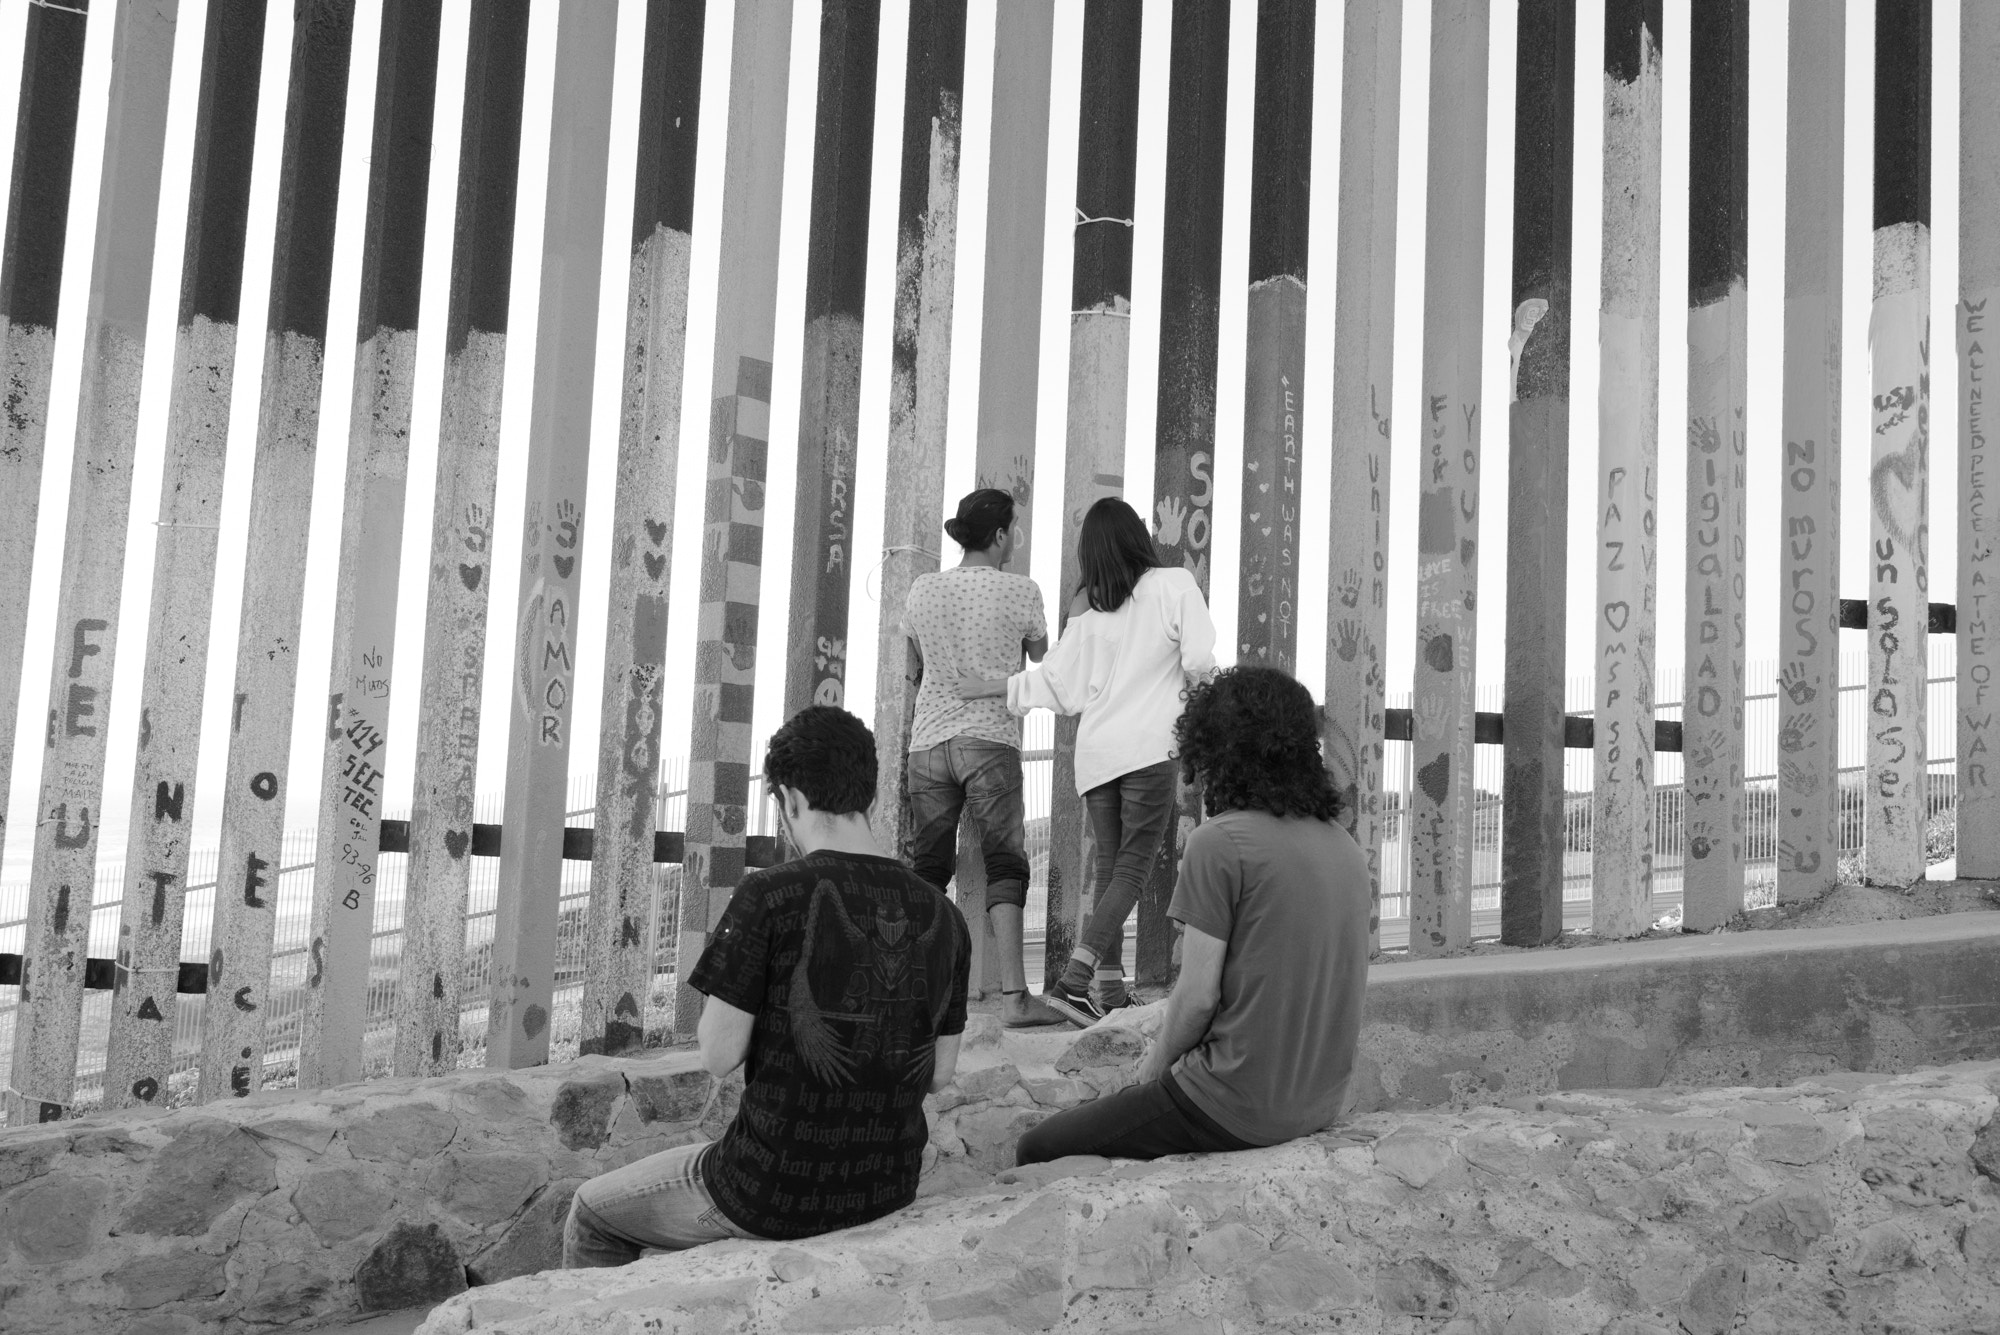 tijuana-education-alice-proujansky-mexico-border-03-1498751318